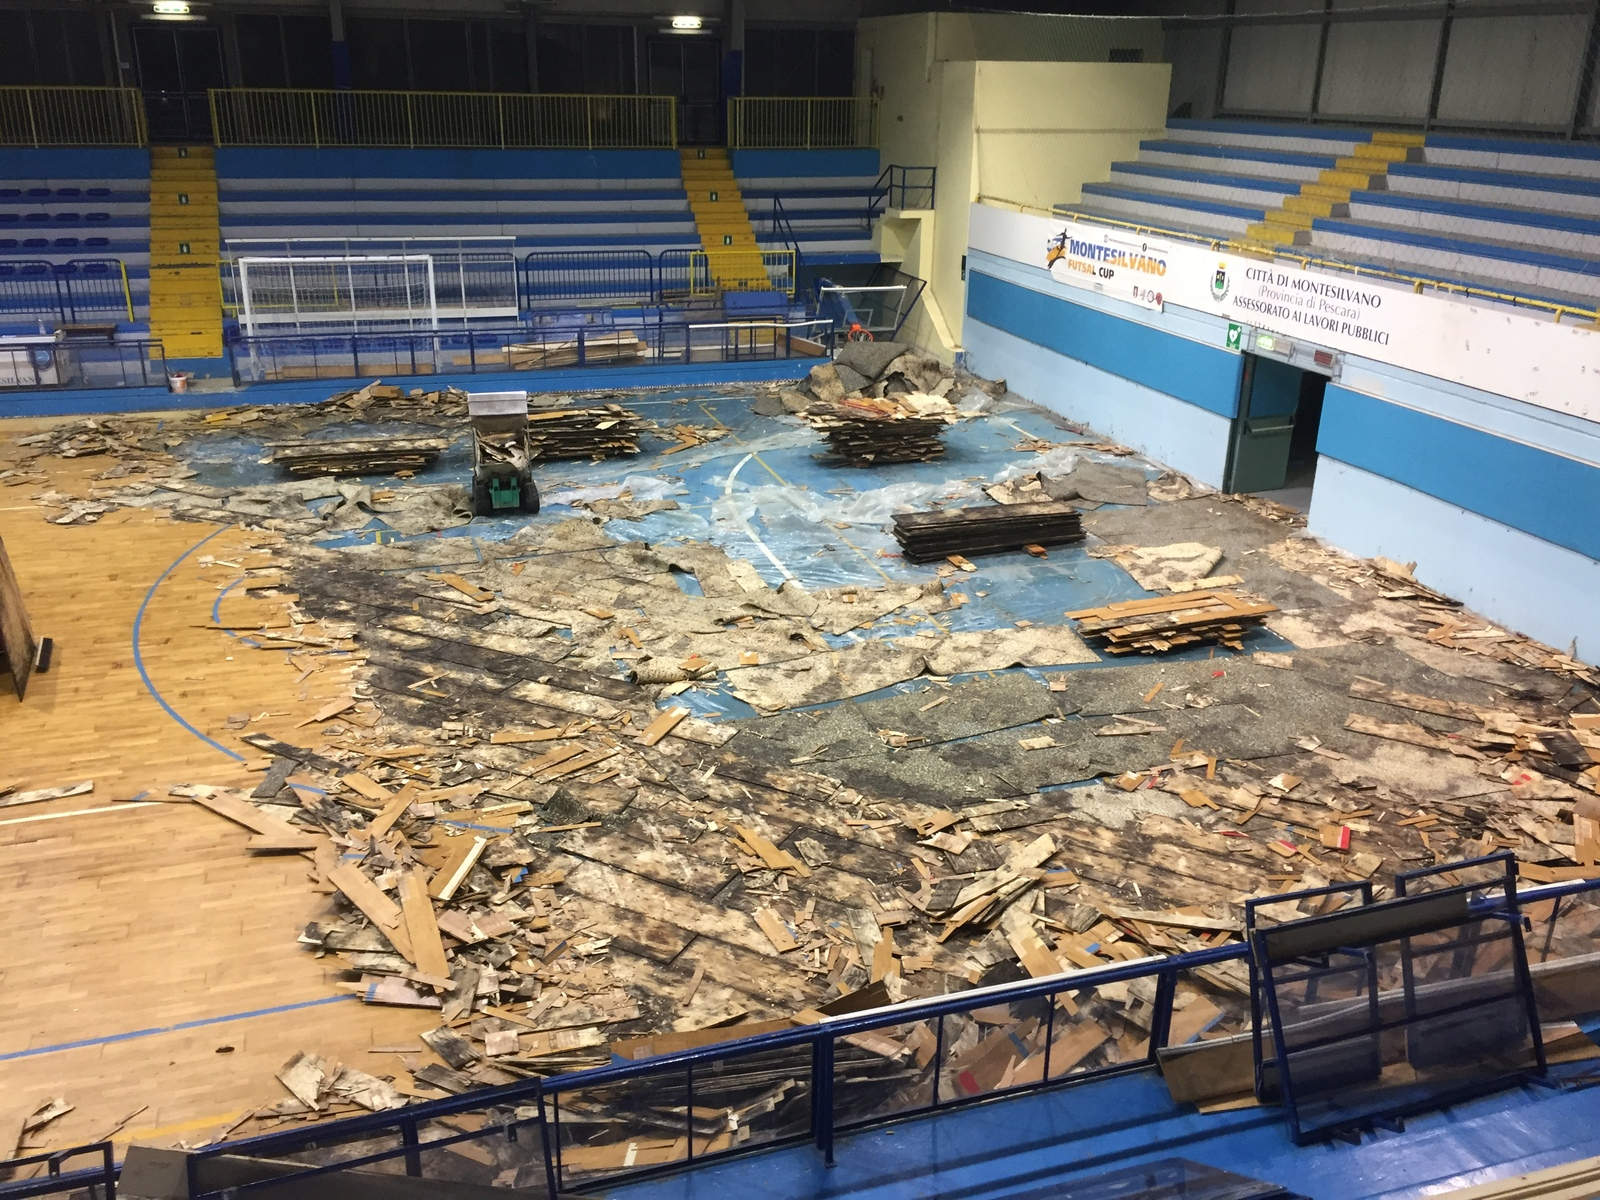 The removal of the old floor